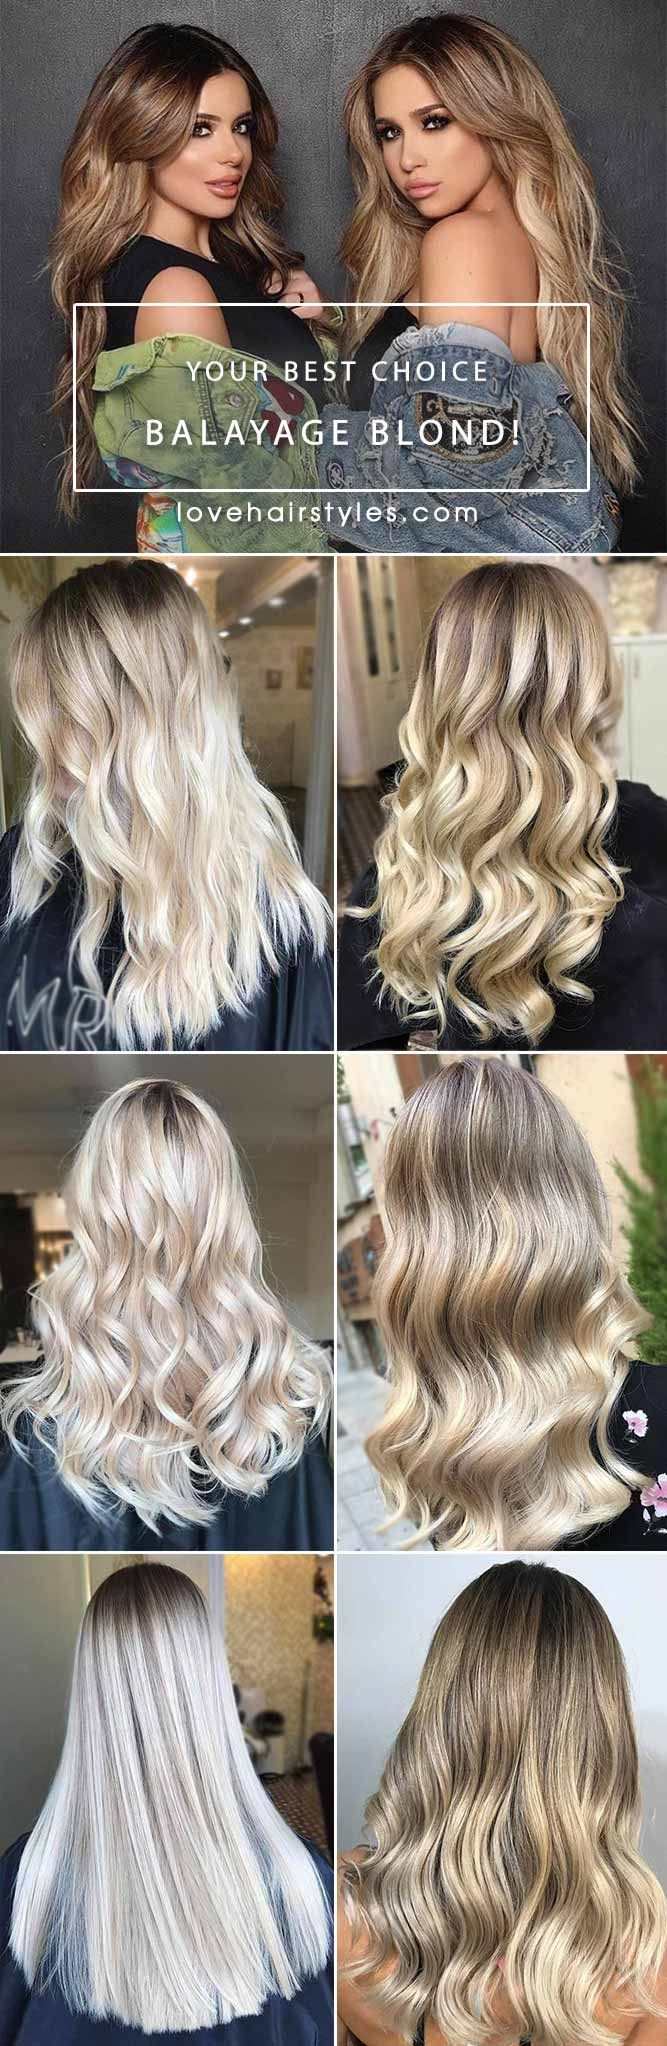 What is all that hype about balayage blond? Once introduced to the public, balay...